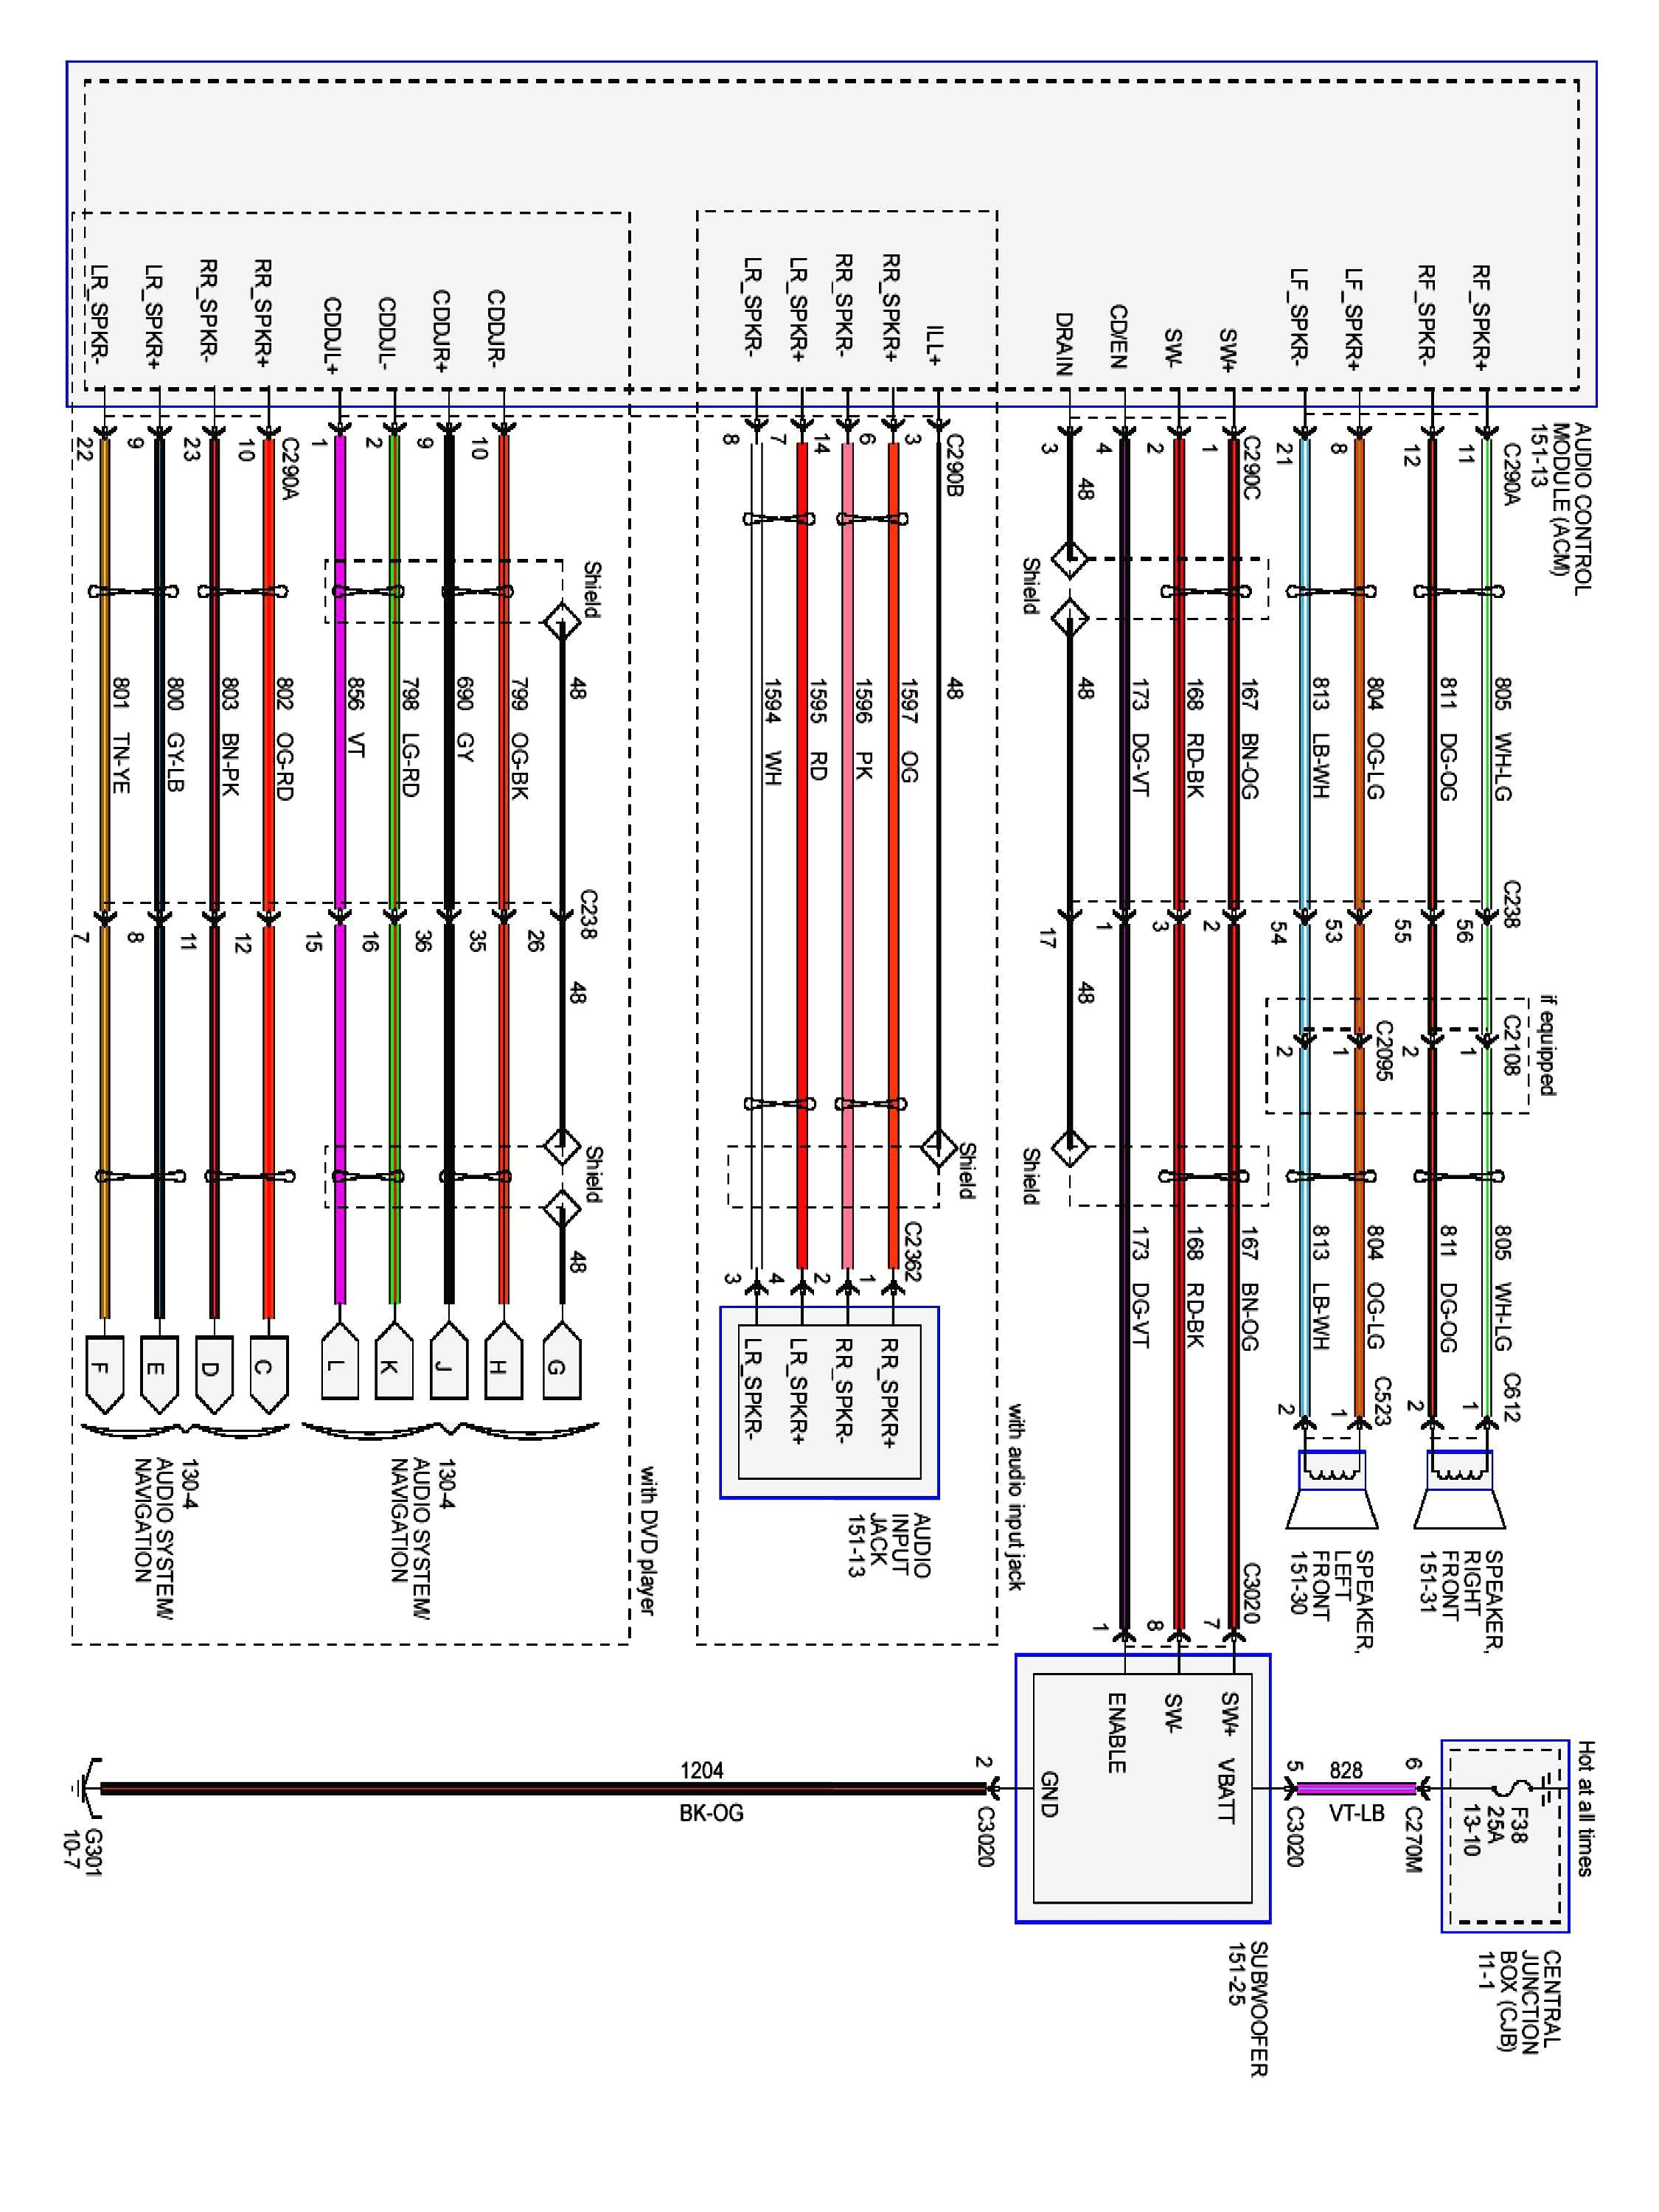 04 Ford Focus Fuse Box 2004 F550 Panel Diagram Schematics Wiring Diagrams U2022 Rh Orwellvets Co 2006 F 250